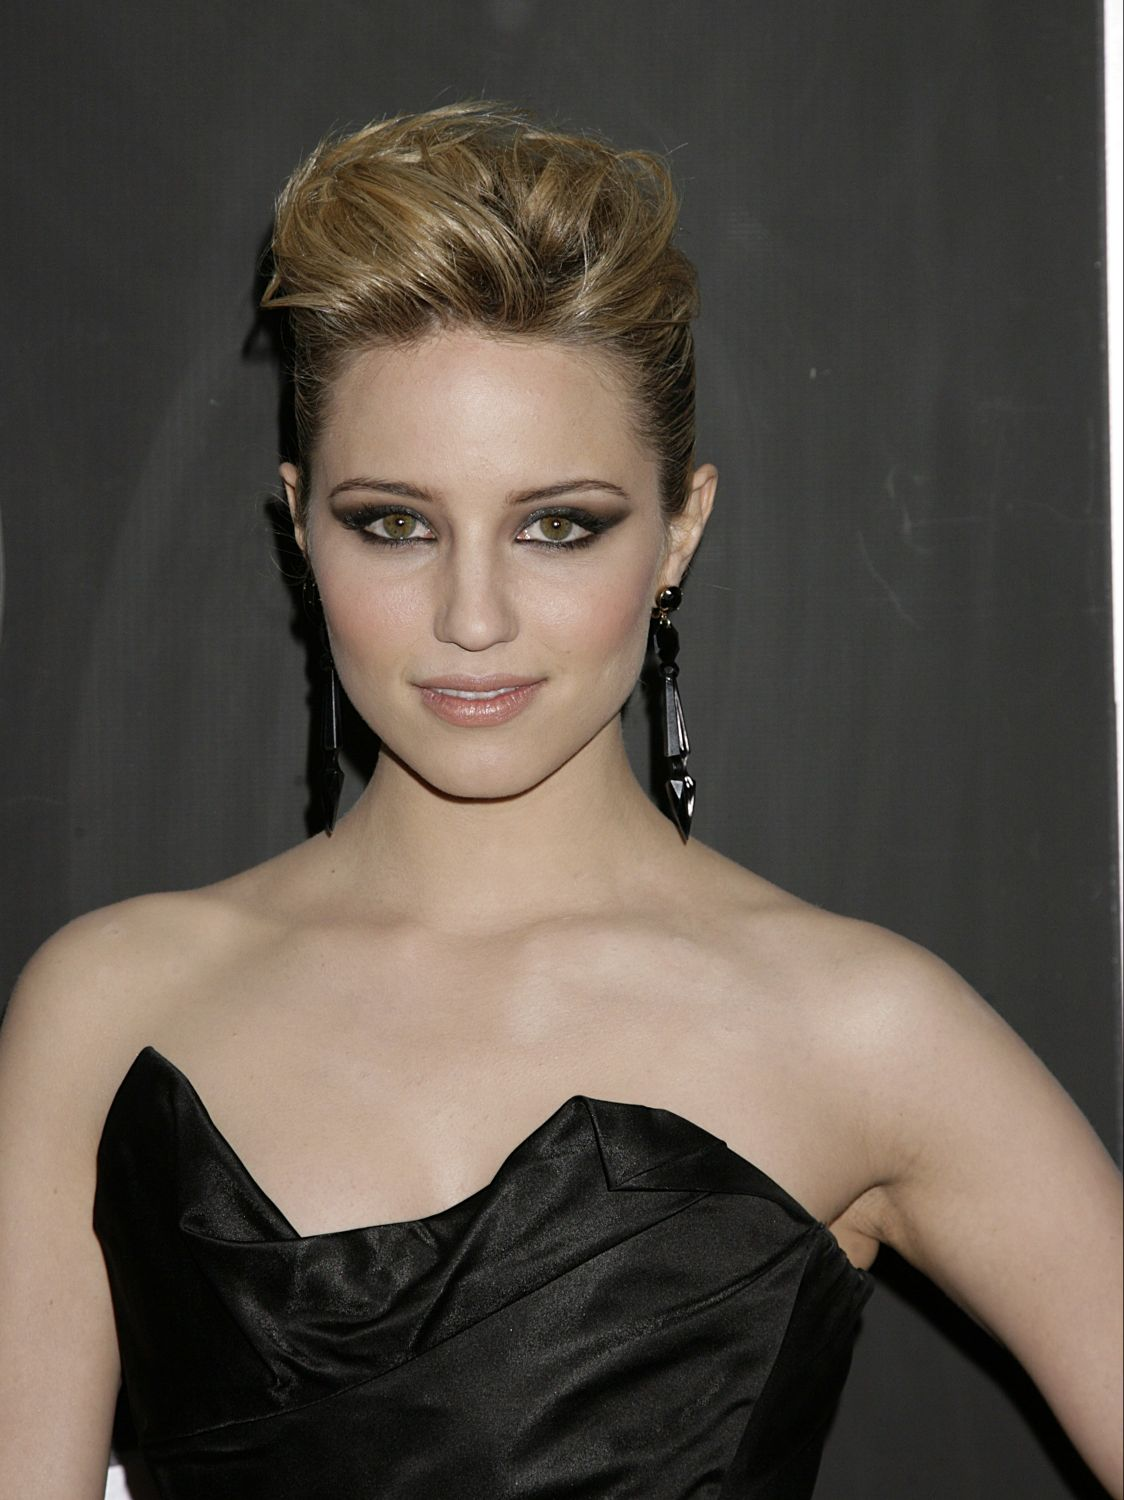 dianna agron at the grammys 2011